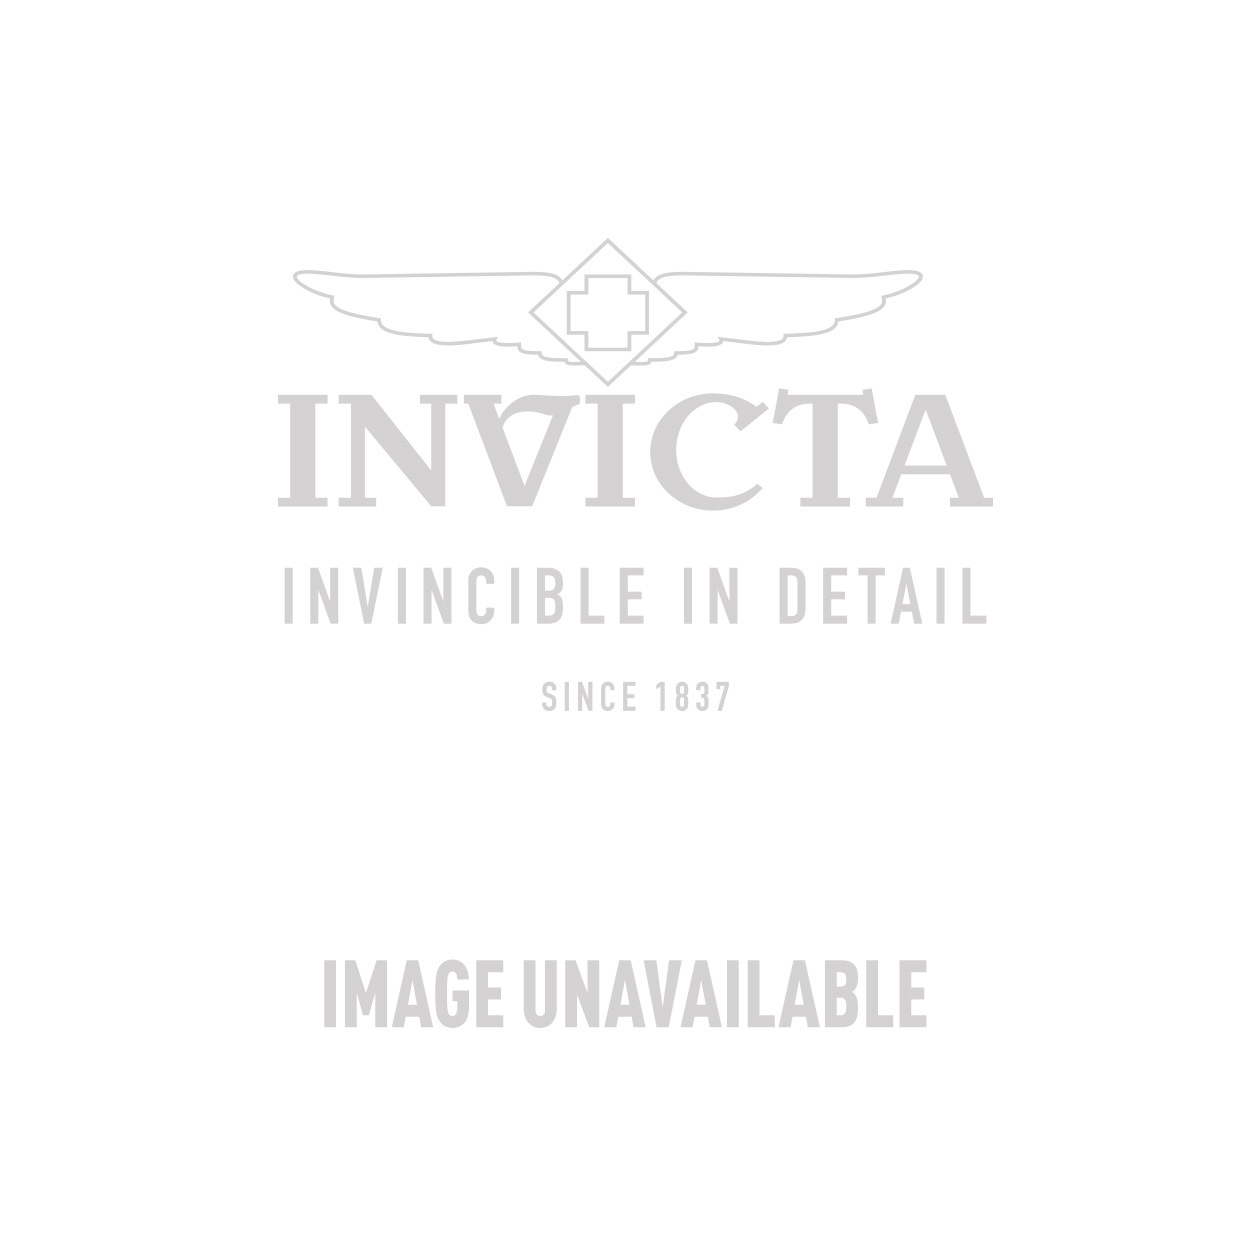 Invicta Specialty Swiss Movement Quartz Watch - Stainless Steel case Stainless Steel band - Model 9402